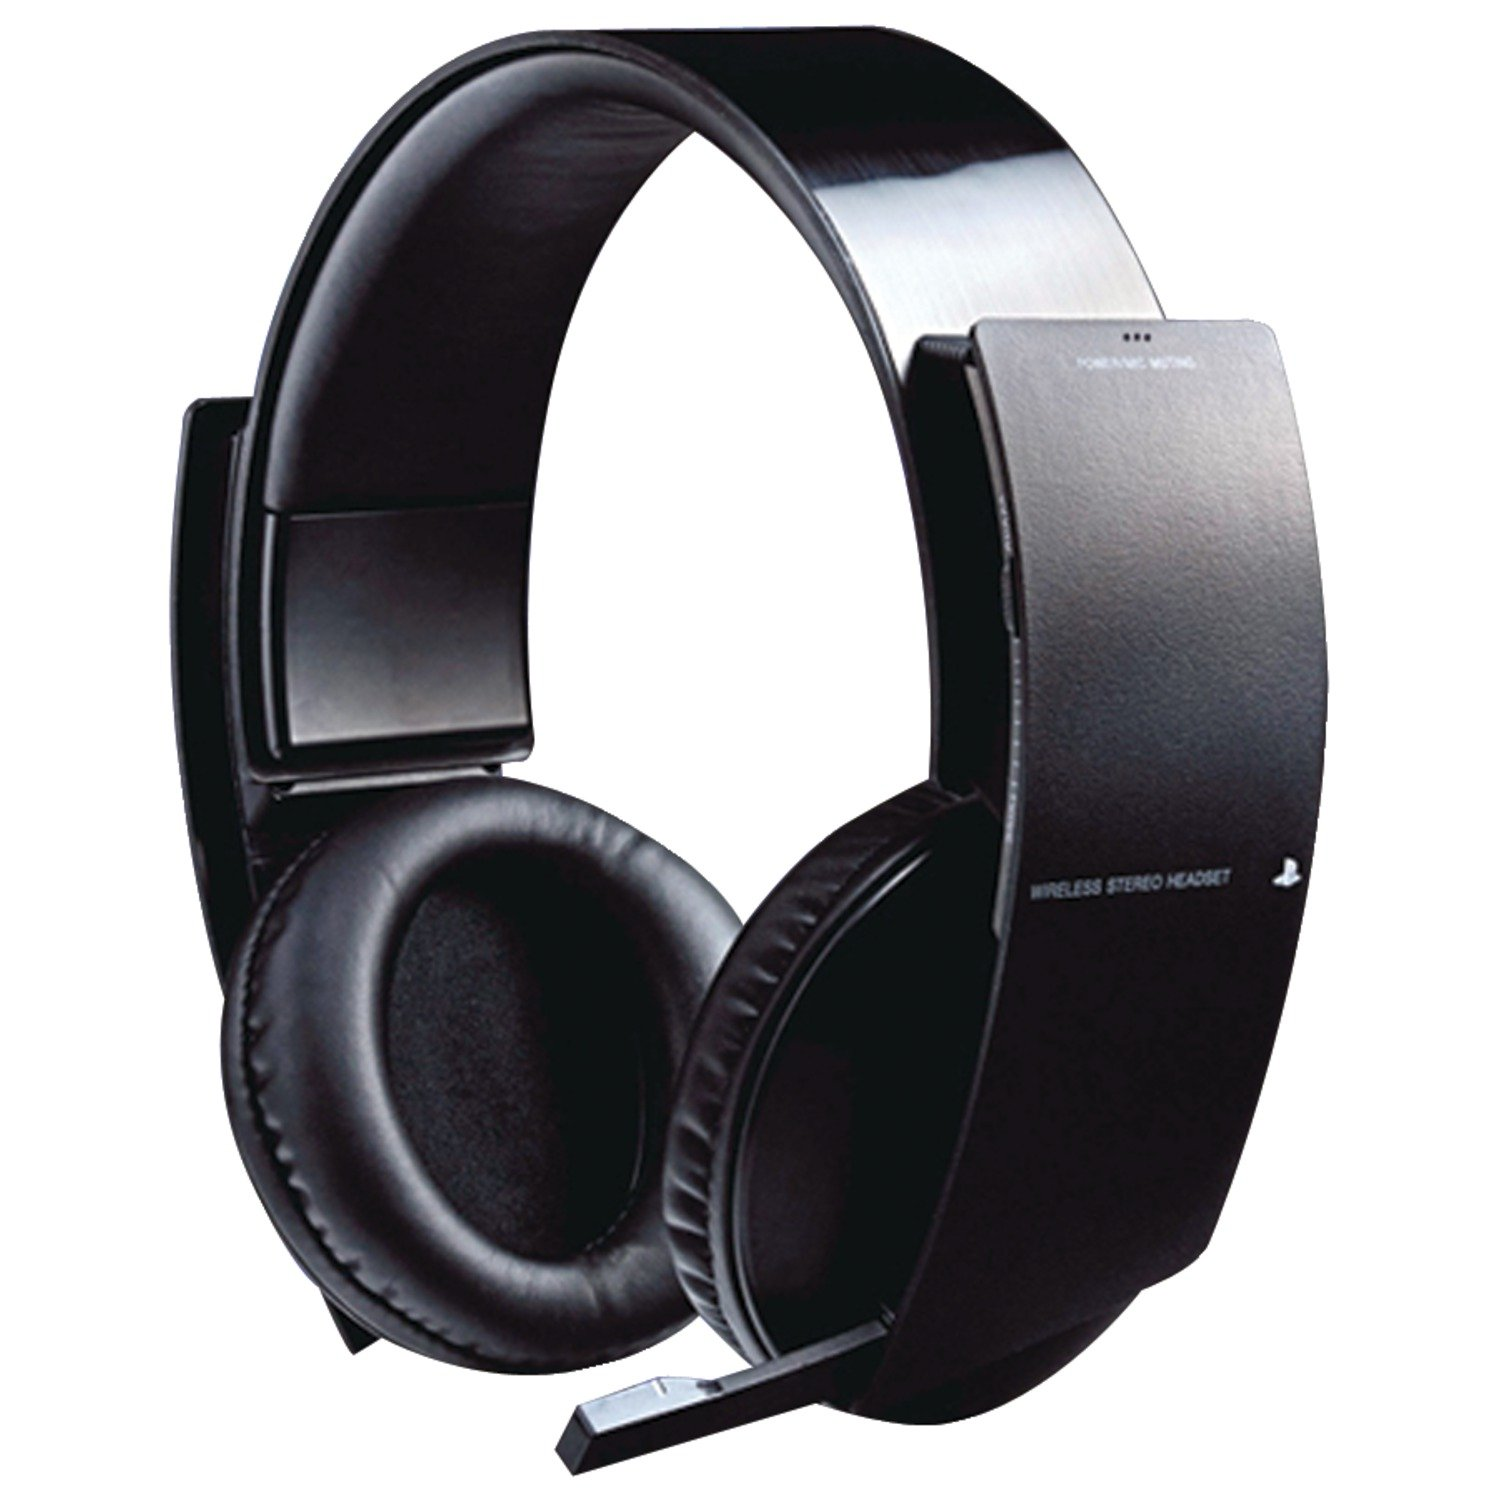 What About Playstation Gold Wireless Stereo Headset